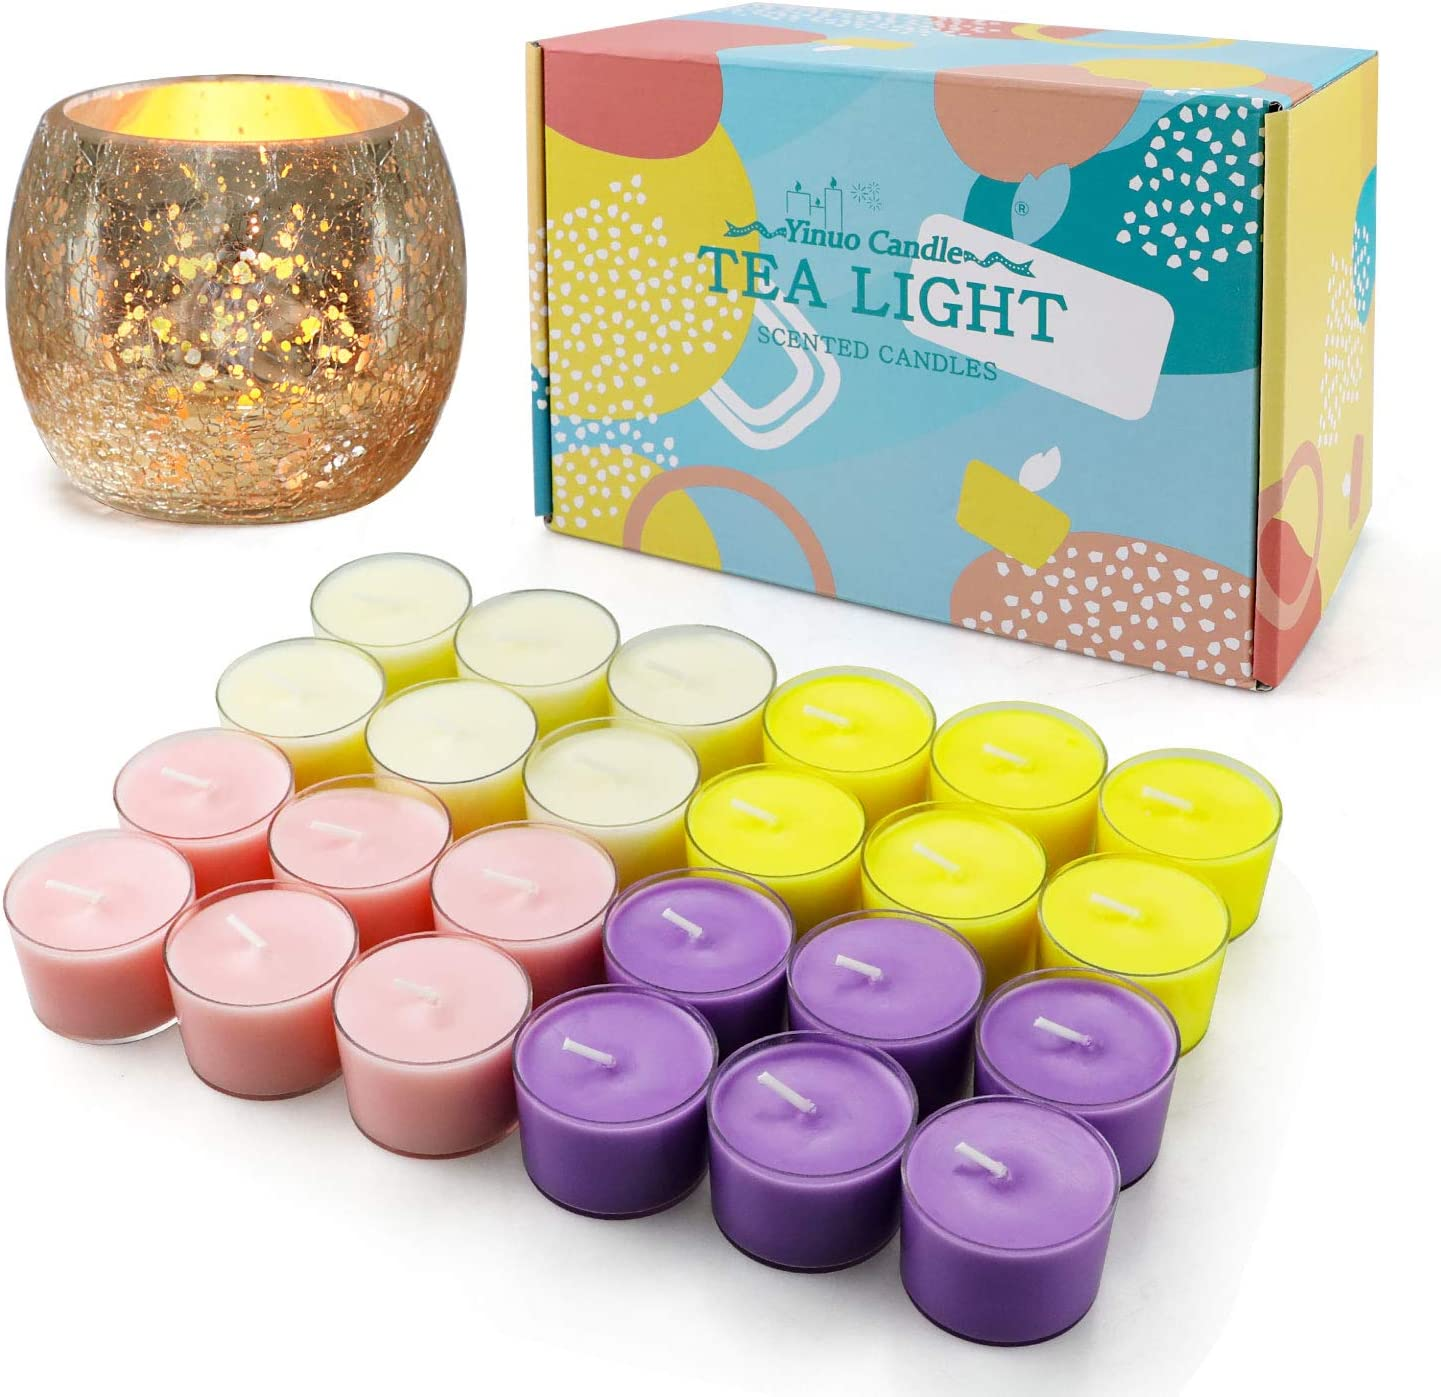 Tea Lights Candles Bulk Small Scented Candles for Home 8 Hours Romantic Aromatherapy Votive Candles Gift for Birthday Home Holiday Wedding Anniversary Decorations 24 Pack with a Tealight Candle Holder